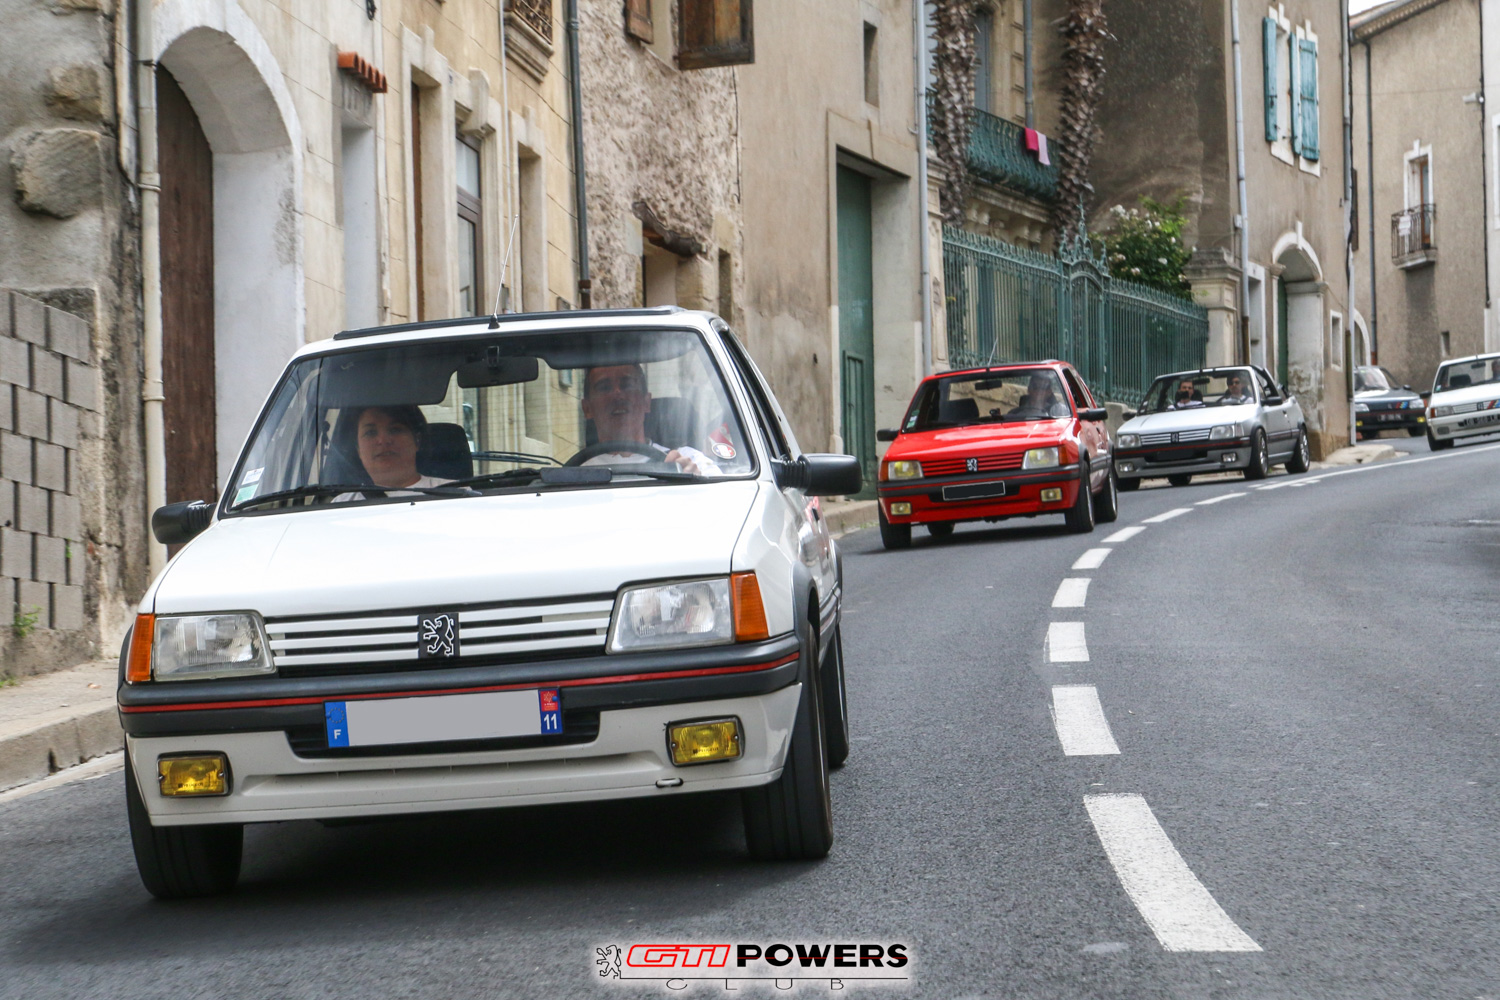 [GTIPOWERS DAYS] Nationale #4 - 8-9-10 Juin 2019 - Beziers - Page 8 Gtipow84